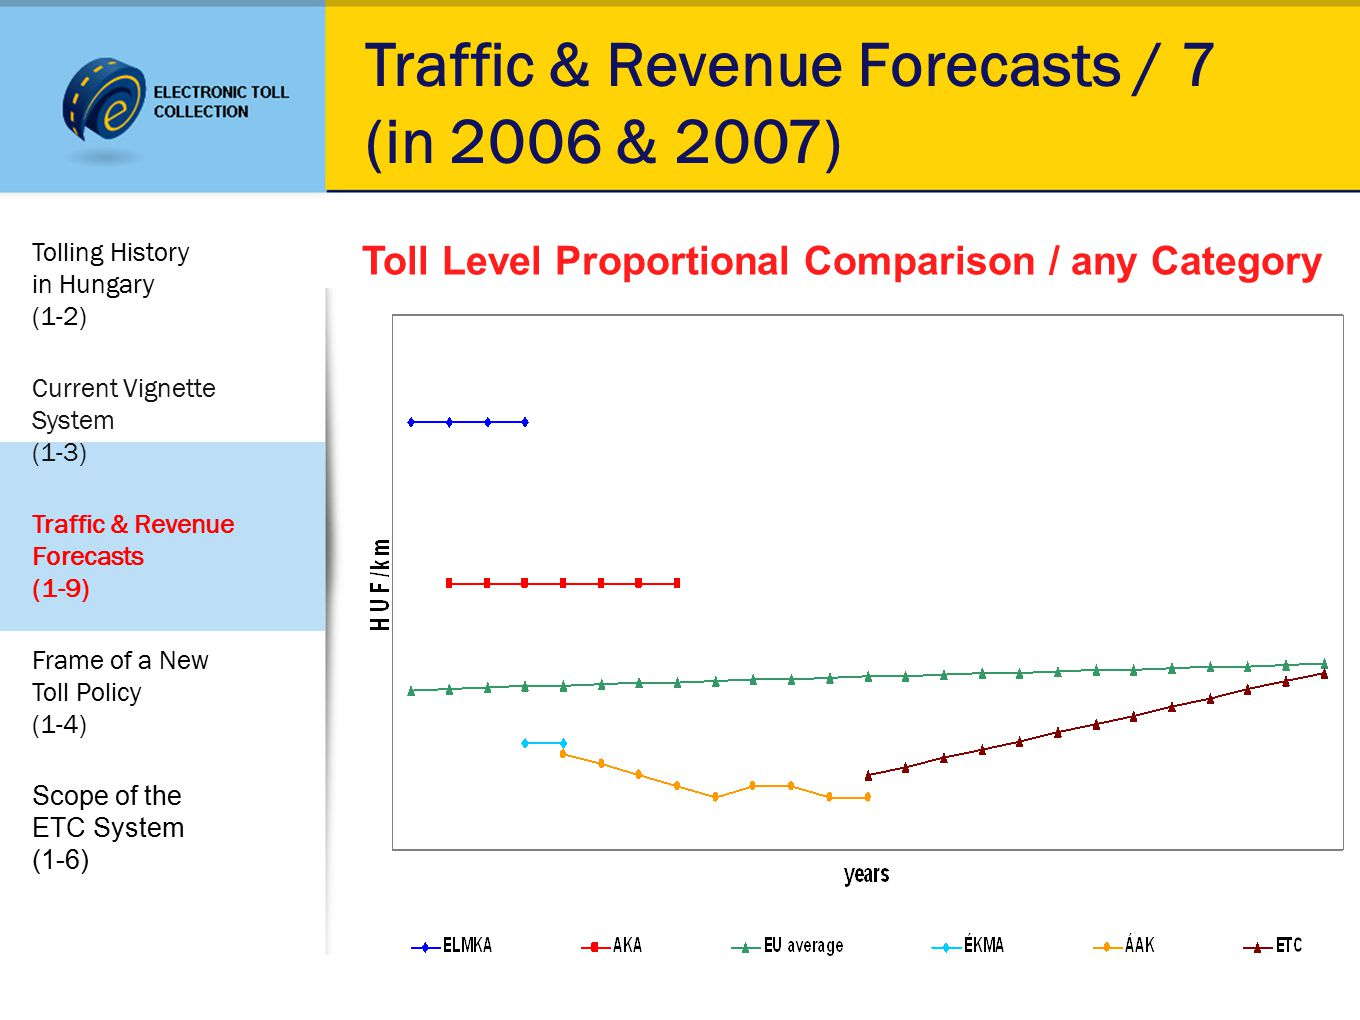 Traffic & Revenue Forecasts / 7 (in 2006 & 2007) Toll Level Proportional Comparison / any Category Tolling History in Hungary (1-2) Current Vignette System (1-3) Traffic & Revenue Forecasts (1-9) Frame of a New Toll Policy (1-4) Scope of the ETC System (1-6)